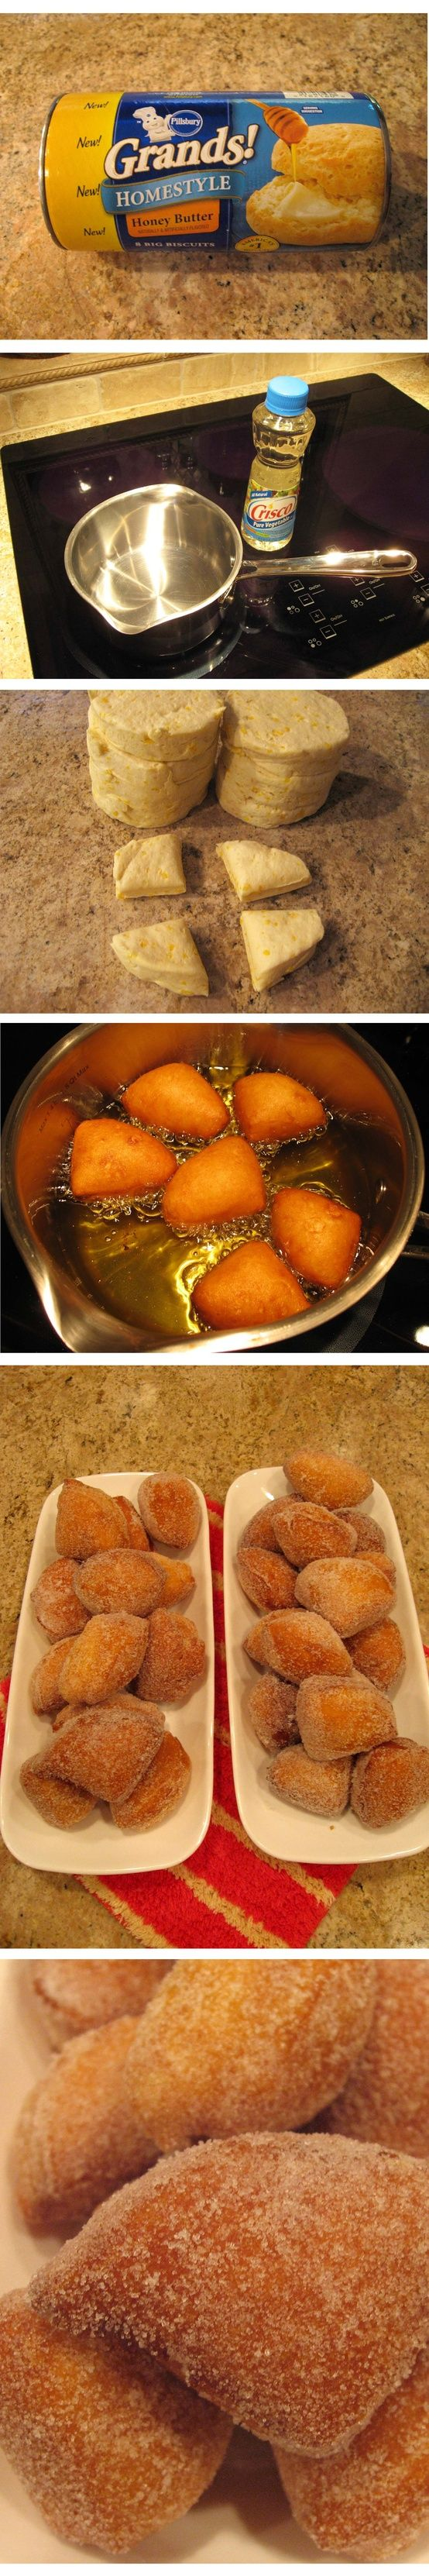 Easy Biscuit Doughnut Holes- Cut biscuits into quarters, drop in 200 - 240° oil for a couple of minutes (flip halfway), cool sightly on paper towel, roll in sugar, brown sugar, powdered sugar, ENJOY - best fresh.